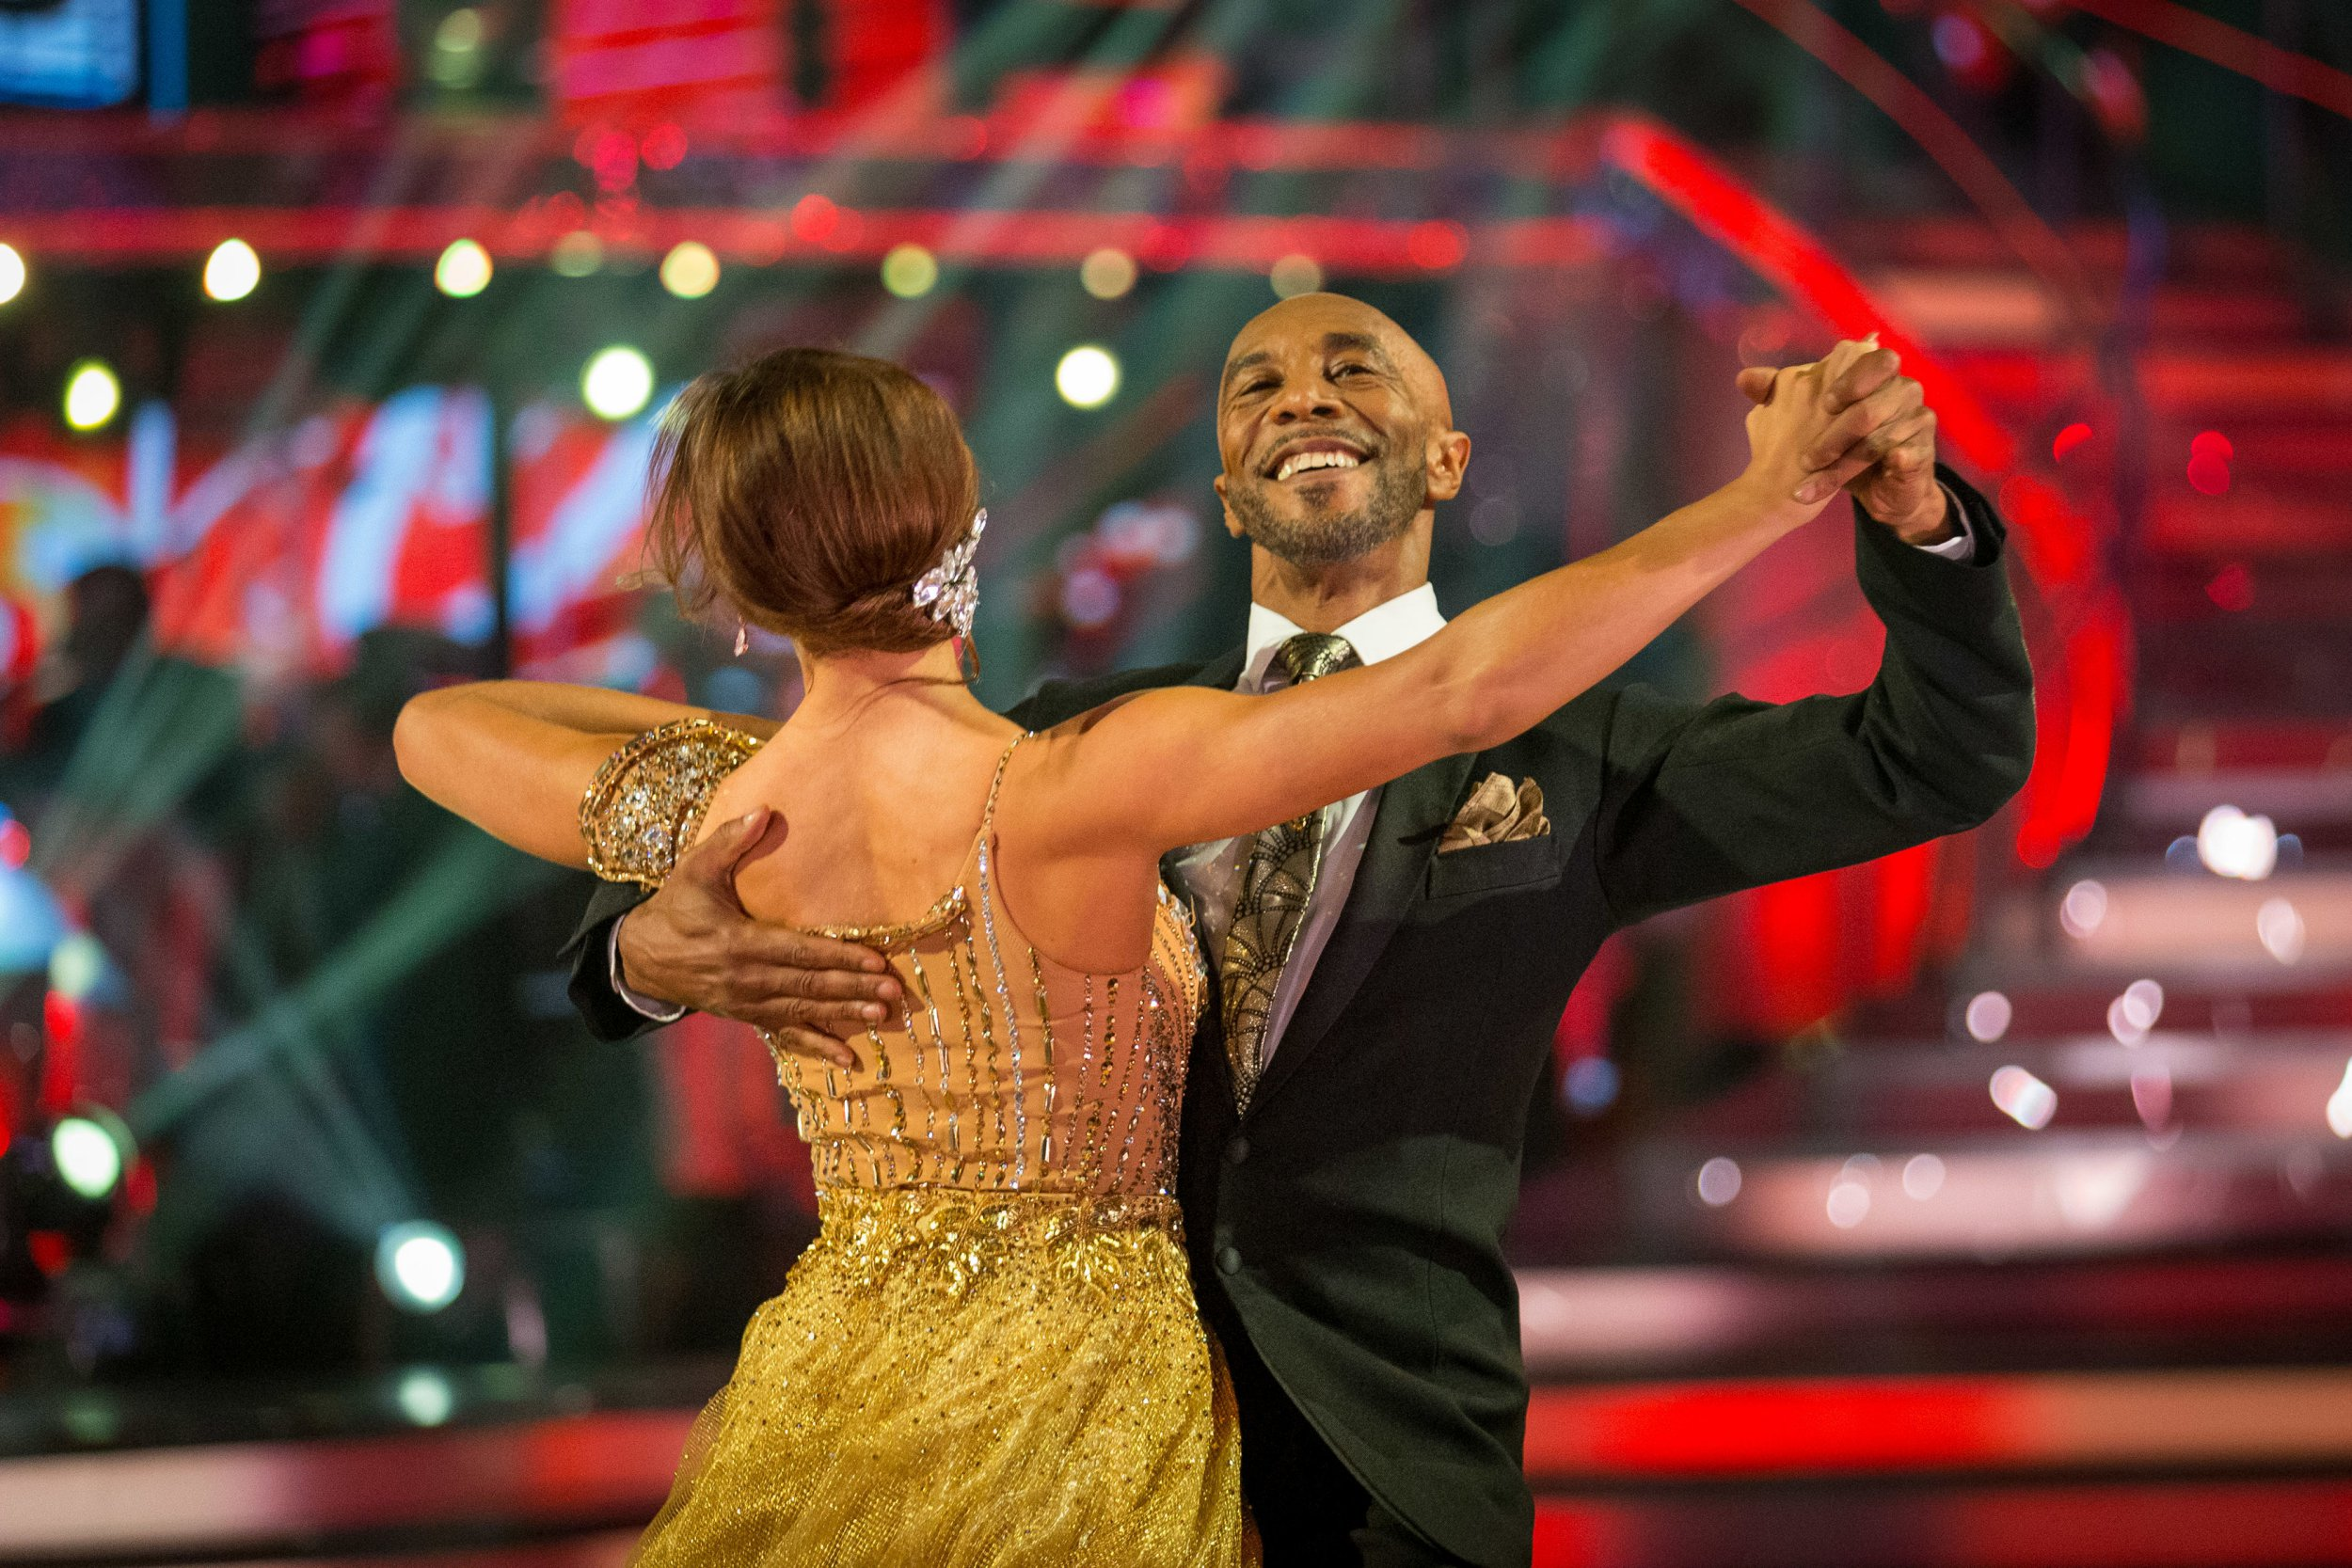 For use in UK, Ireland or Benelux countries only Undated BBC handout photo of Amy Dowden and Danny John-Jules. PRESS ASSOCIATION Photo. Issue date: Saturday October 13, 2018. See PA story SHOWBIZ Strictly. Photo credit should read: Guy Levy/BBC/PA Wire NOTE TO EDITORS: Not for use more than 21 days after issue. You may use this picture without charge only for the purpose of publicising or reporting on current BBC programming, personnel or other BBC output or activity within 21 days of issue. Any use after that time MUST be cleared through BBC Picture Publicity. Please credit the image to the BBC and any named photographer or independent programme maker, as described in th